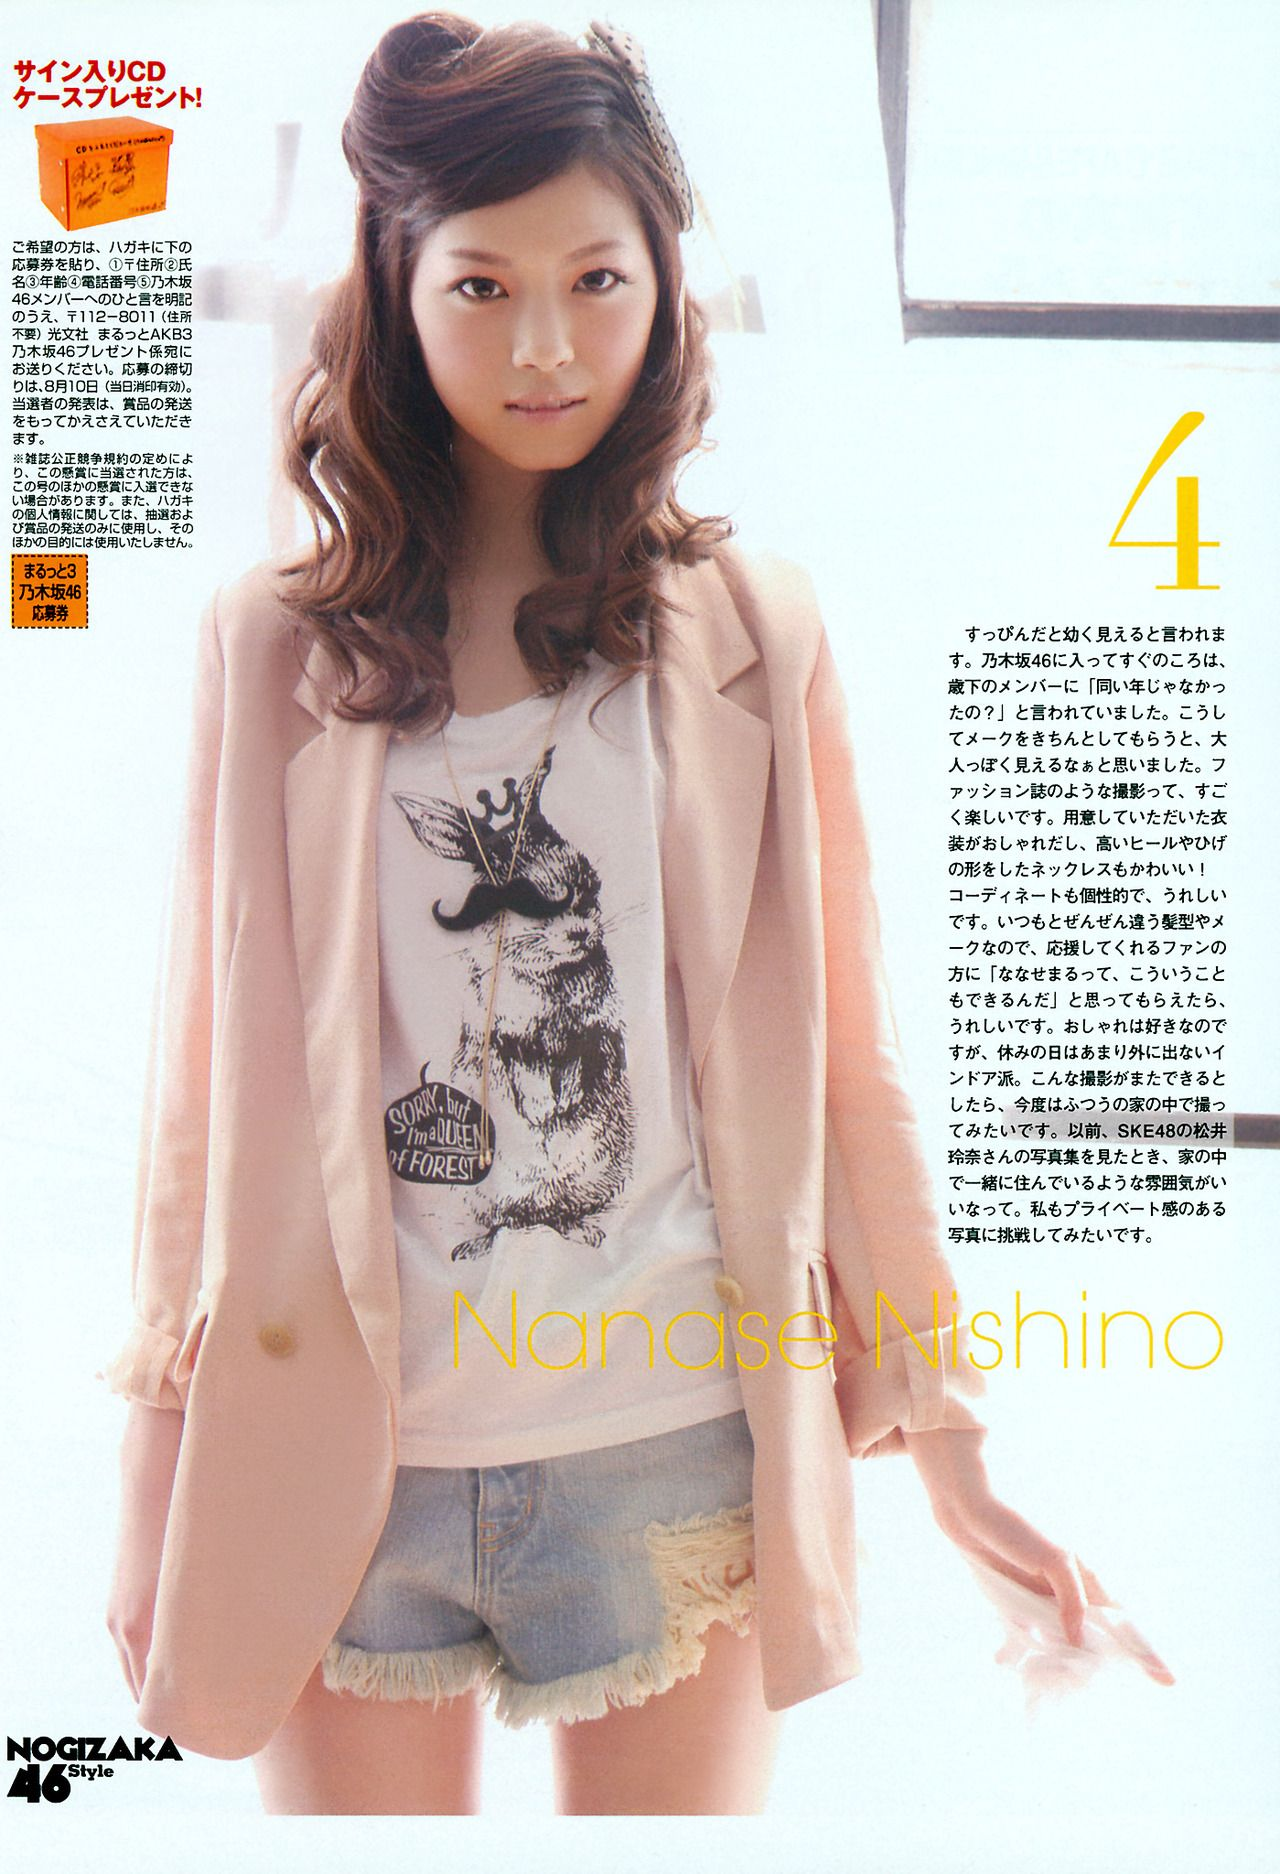 Fashion And Beauty Magazine 46 Nogizaka46 Style Nishino Nanase Ngzk46